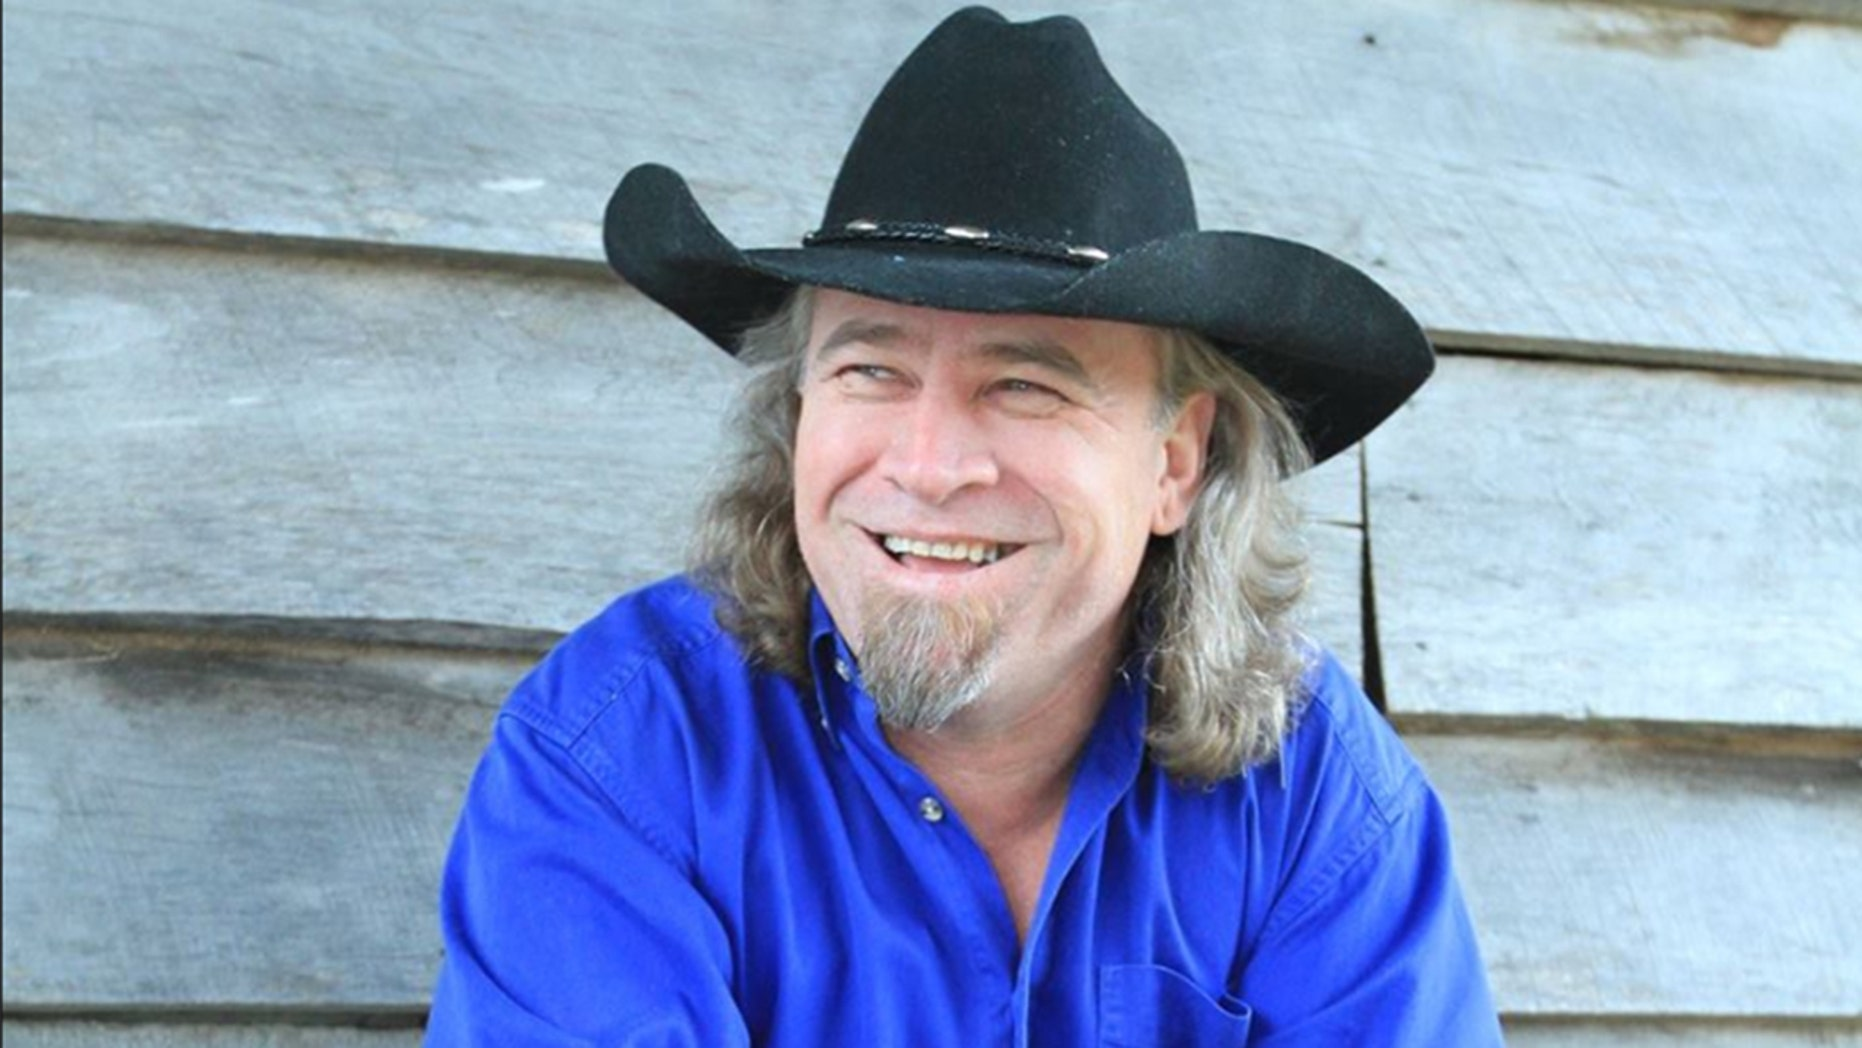 Country singer Doug Supernaw revealed to his fans that he's battling cancer.